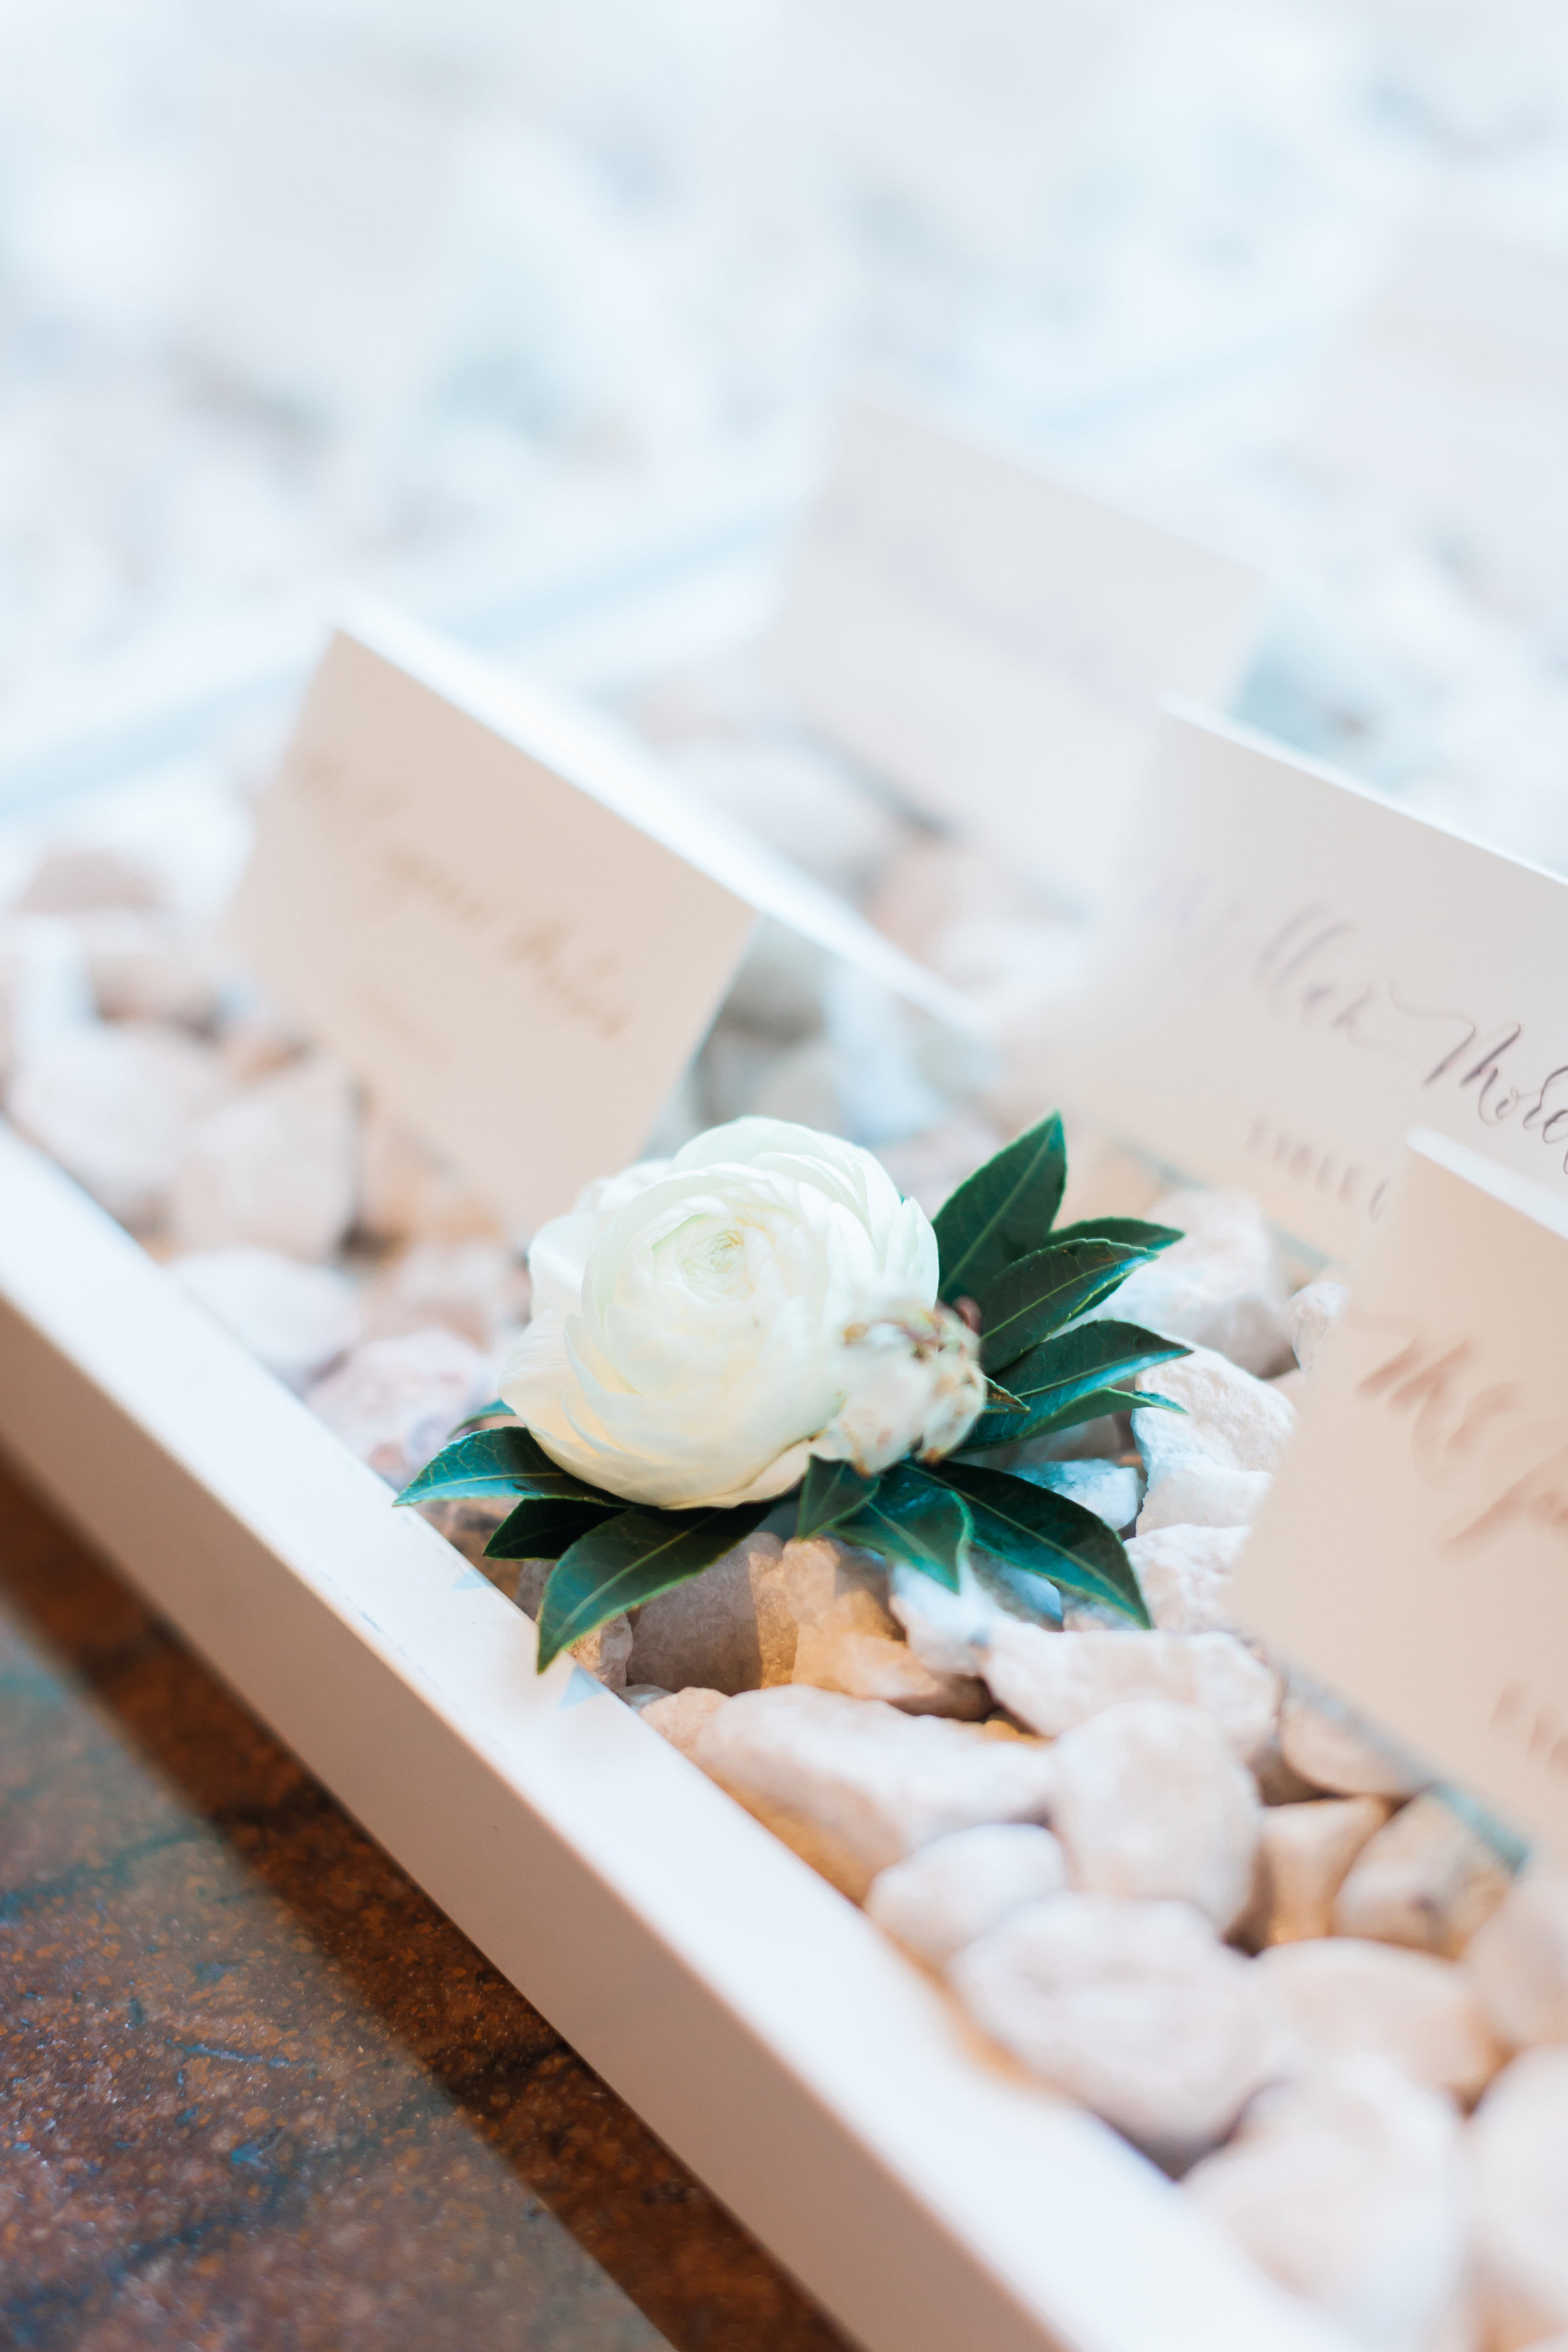 Escort card display for an all white wedding by Layers of Lovely